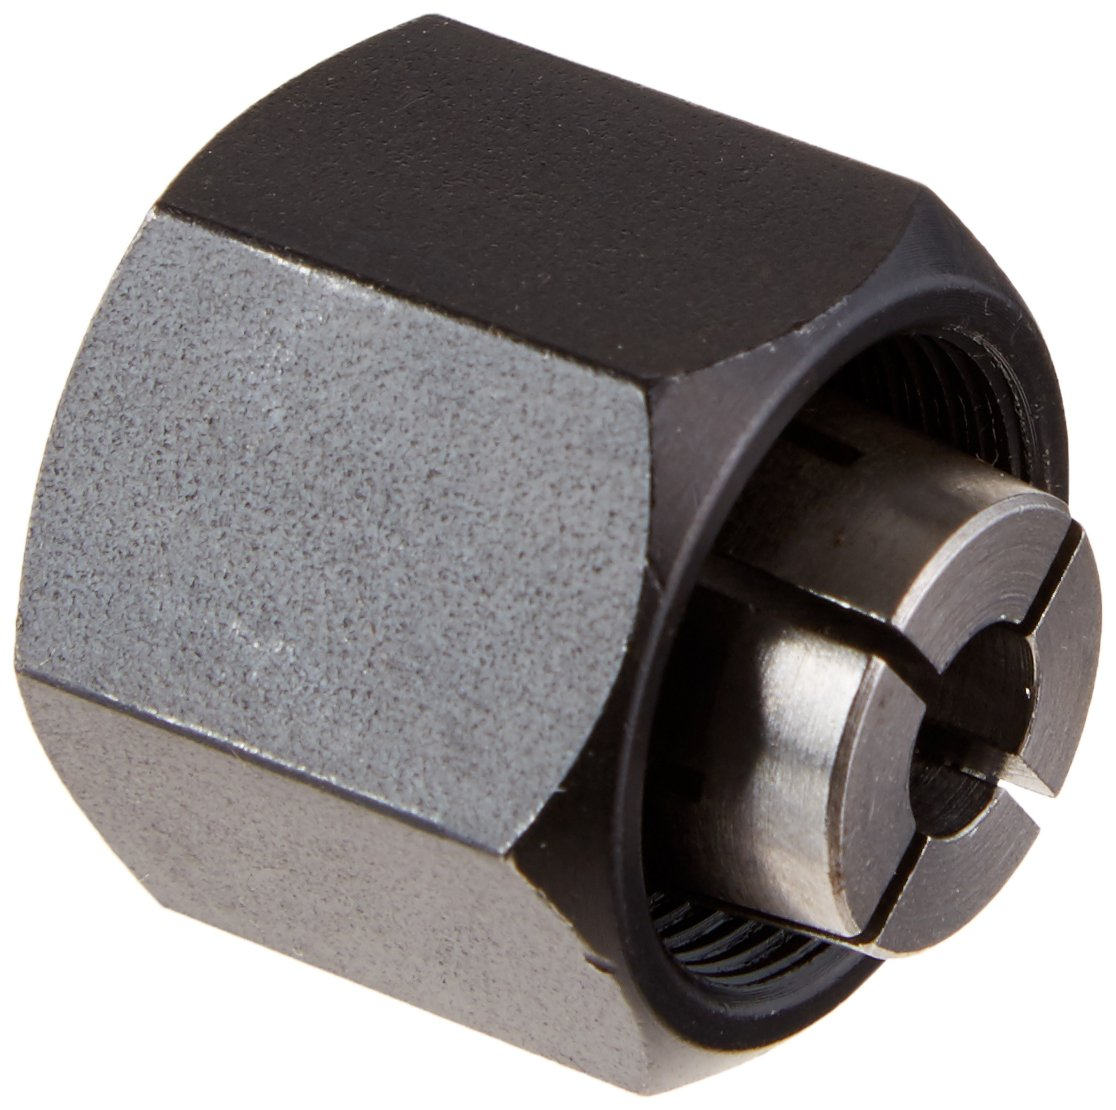 """Bosch 2610906283 1/4"""" Collet Chuck for 1613-,1617-, 1618- & 1619- Series Routers"""